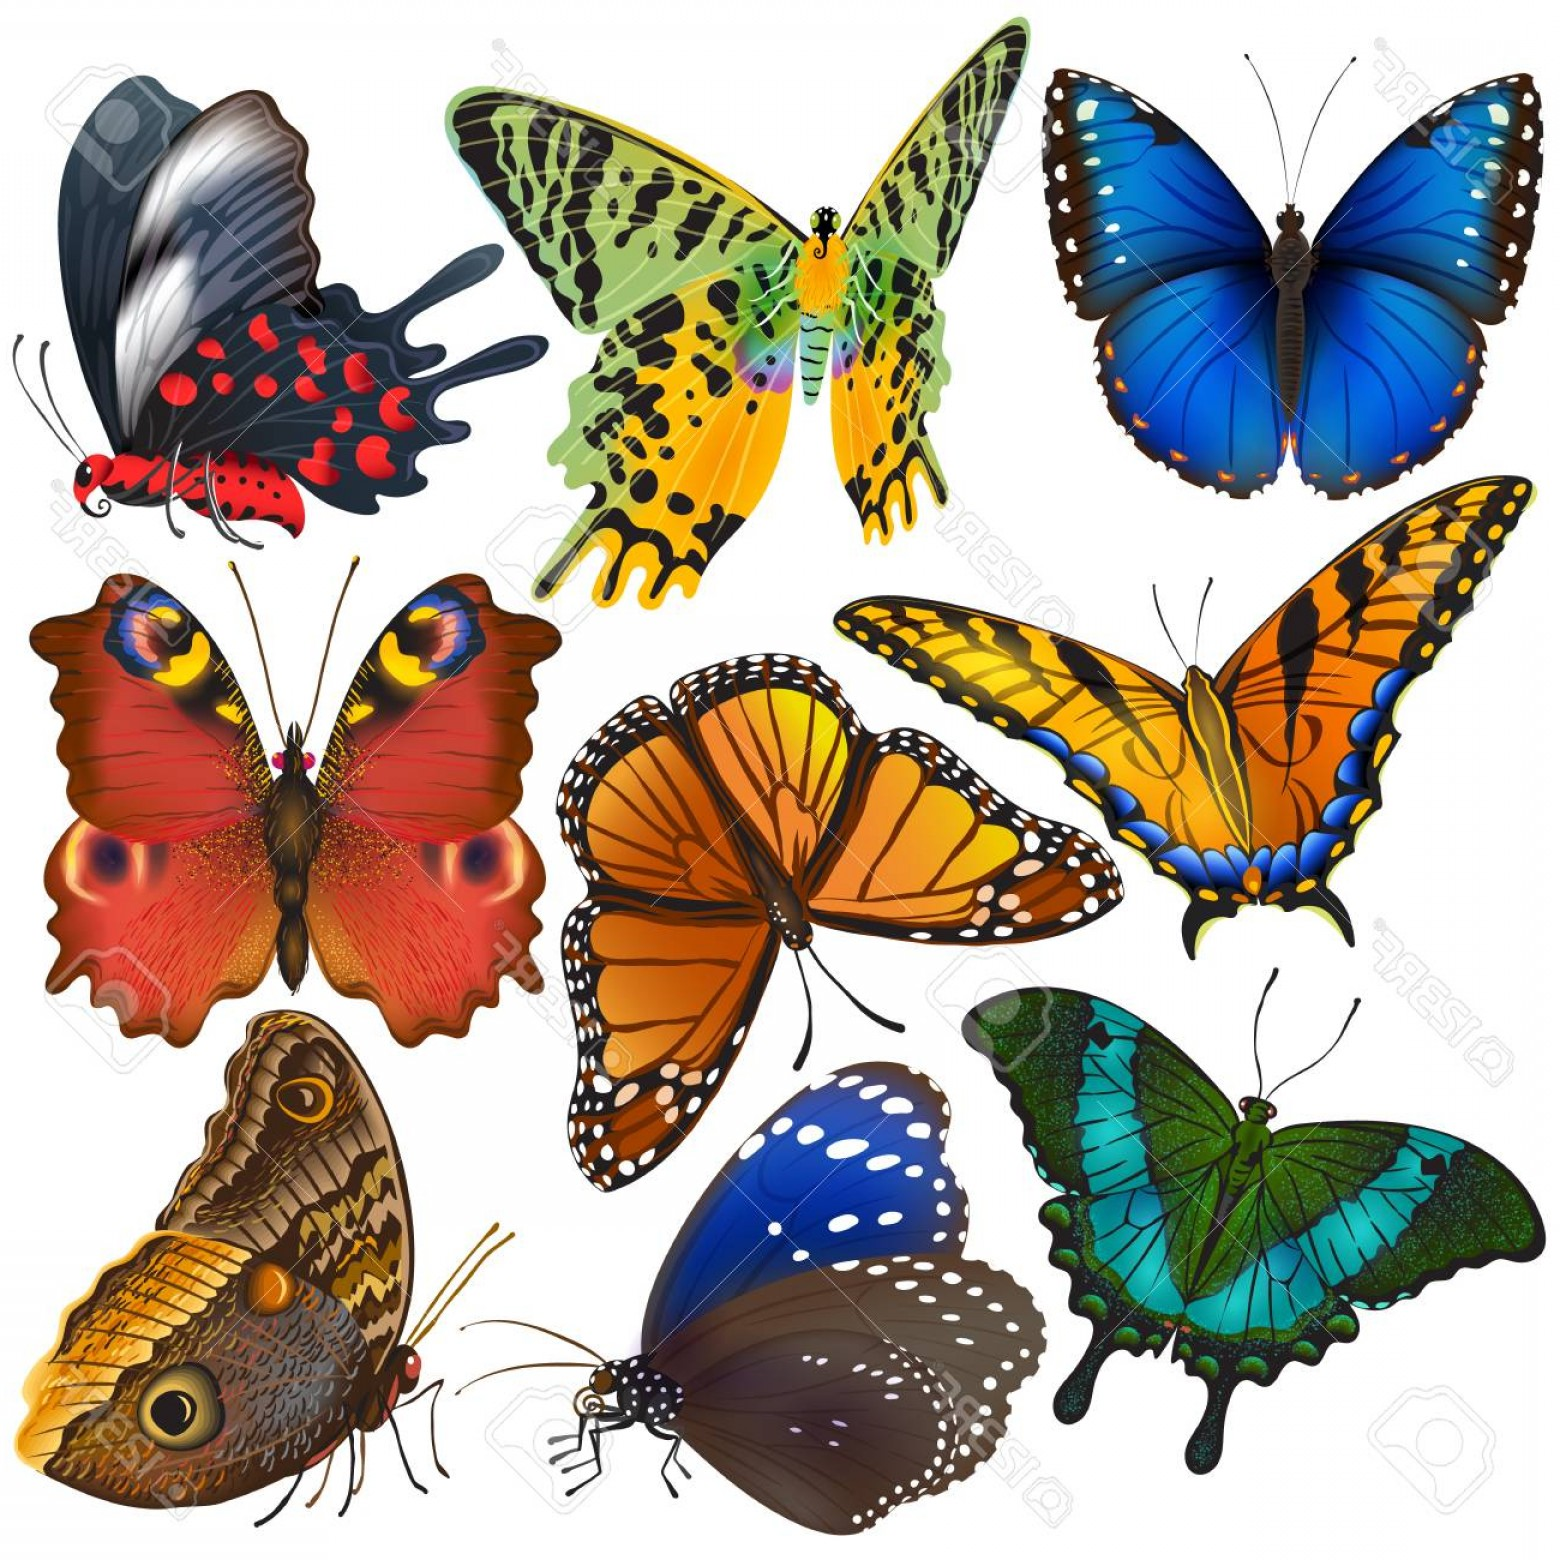 Real Butterfly Vector: Photostock Vector Butterfly Vector Colorful Insect Flying For Decoration And Beautiful Butterflies Wings Fly In Spring